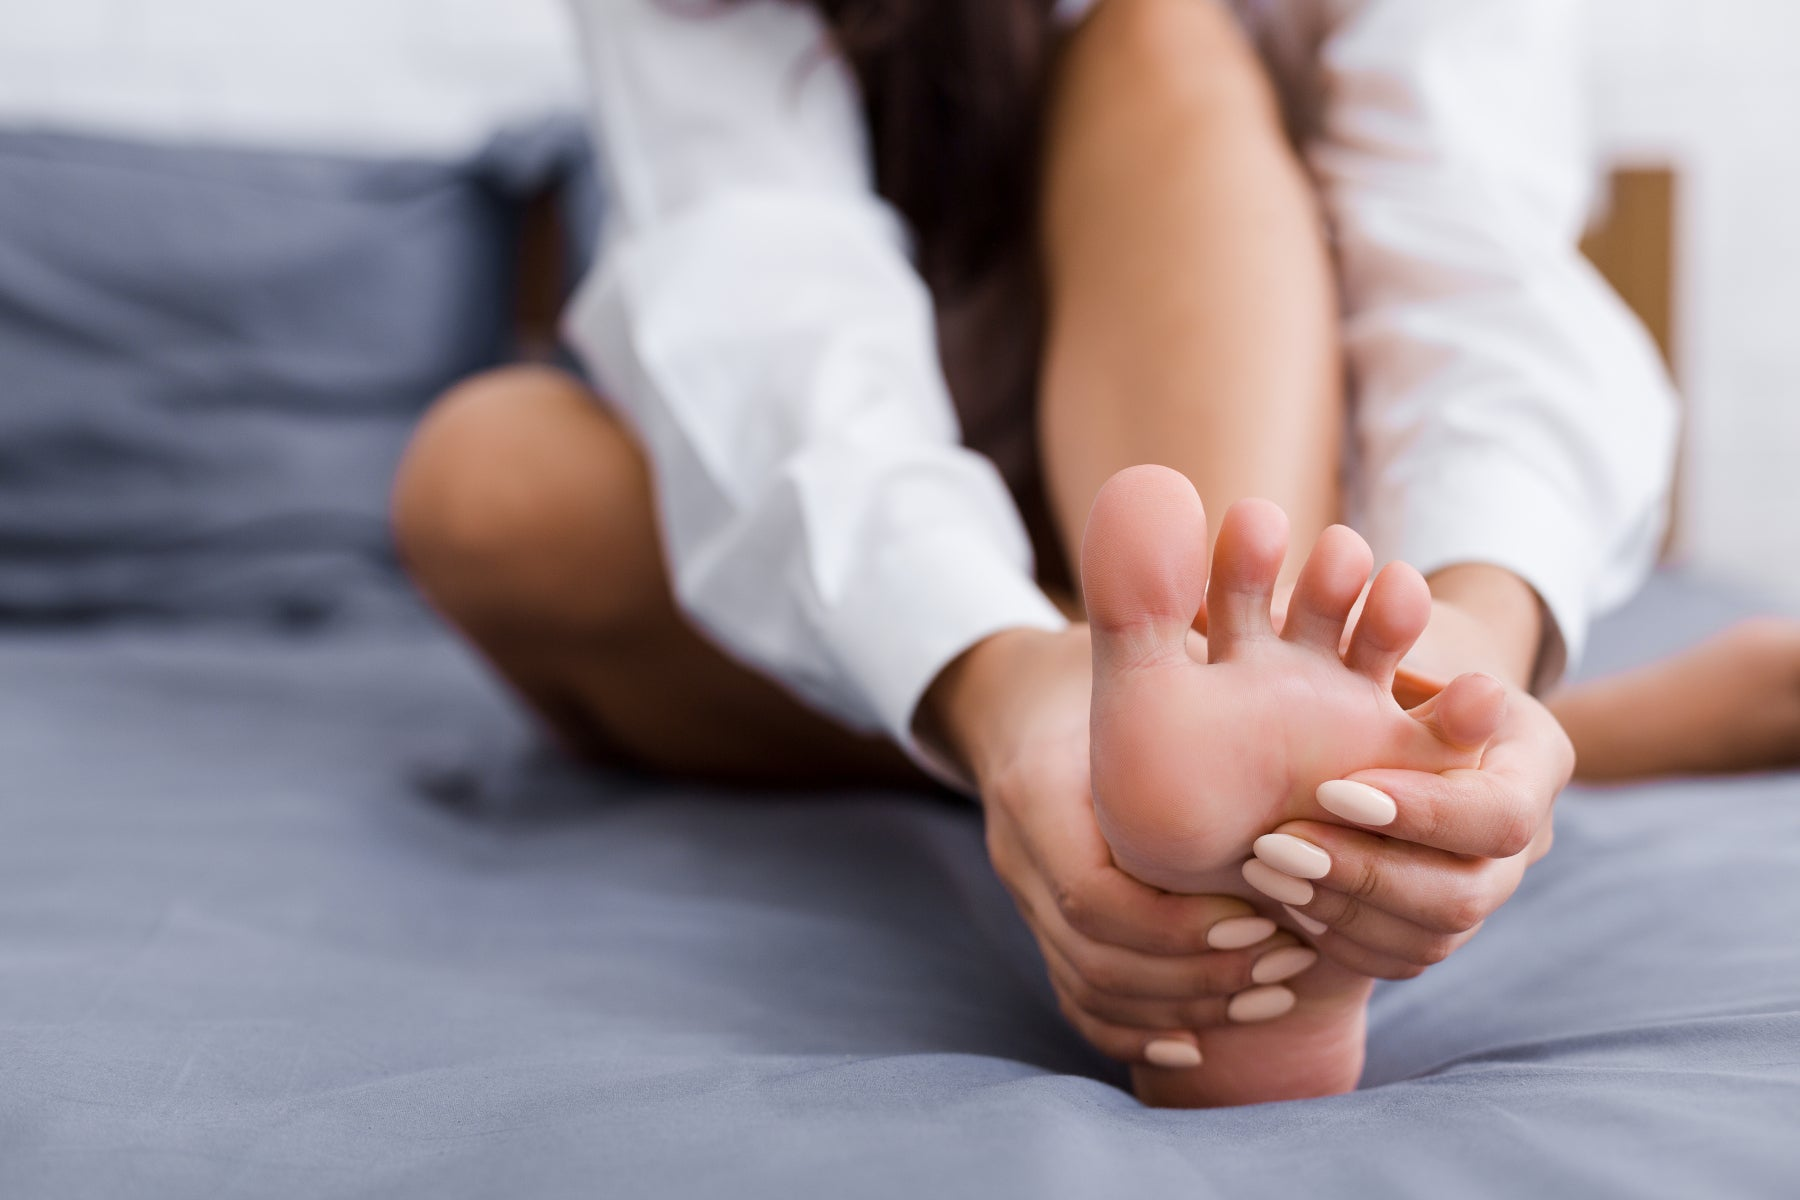 Woman giving herself a foot massage in bed.